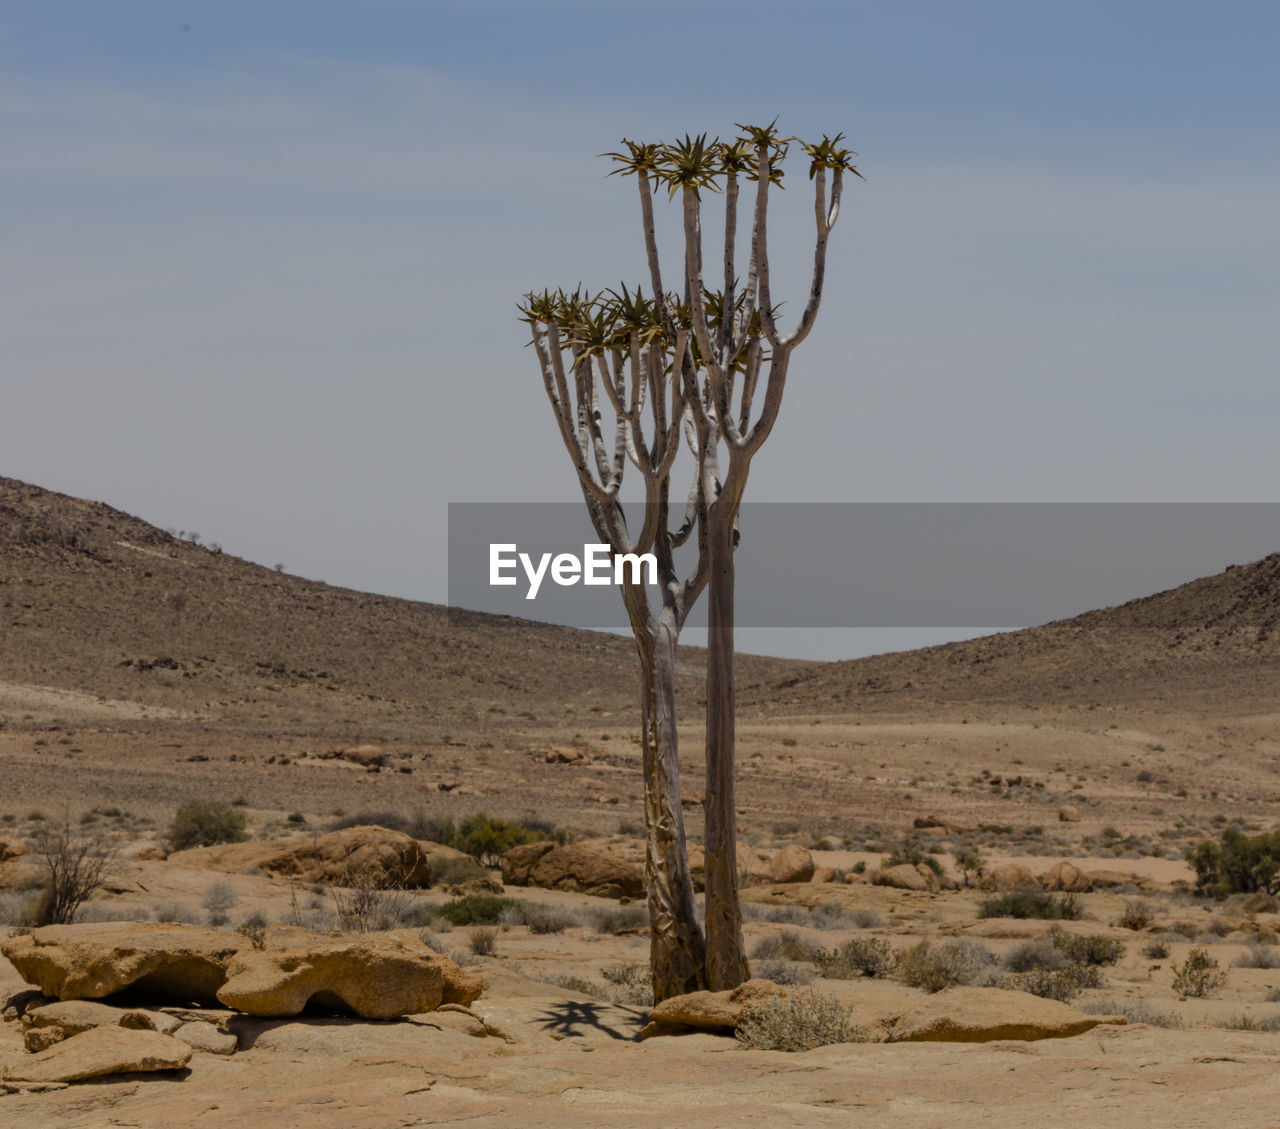 desert, sky, environment, land, landscape, scenics - nature, beauty in nature, climate, tranquility, tranquil scene, plant, arid climate, nature, non-urban scene, no people, remote, day, sand, horizon over land, clear sky, outdoors, semi-arid